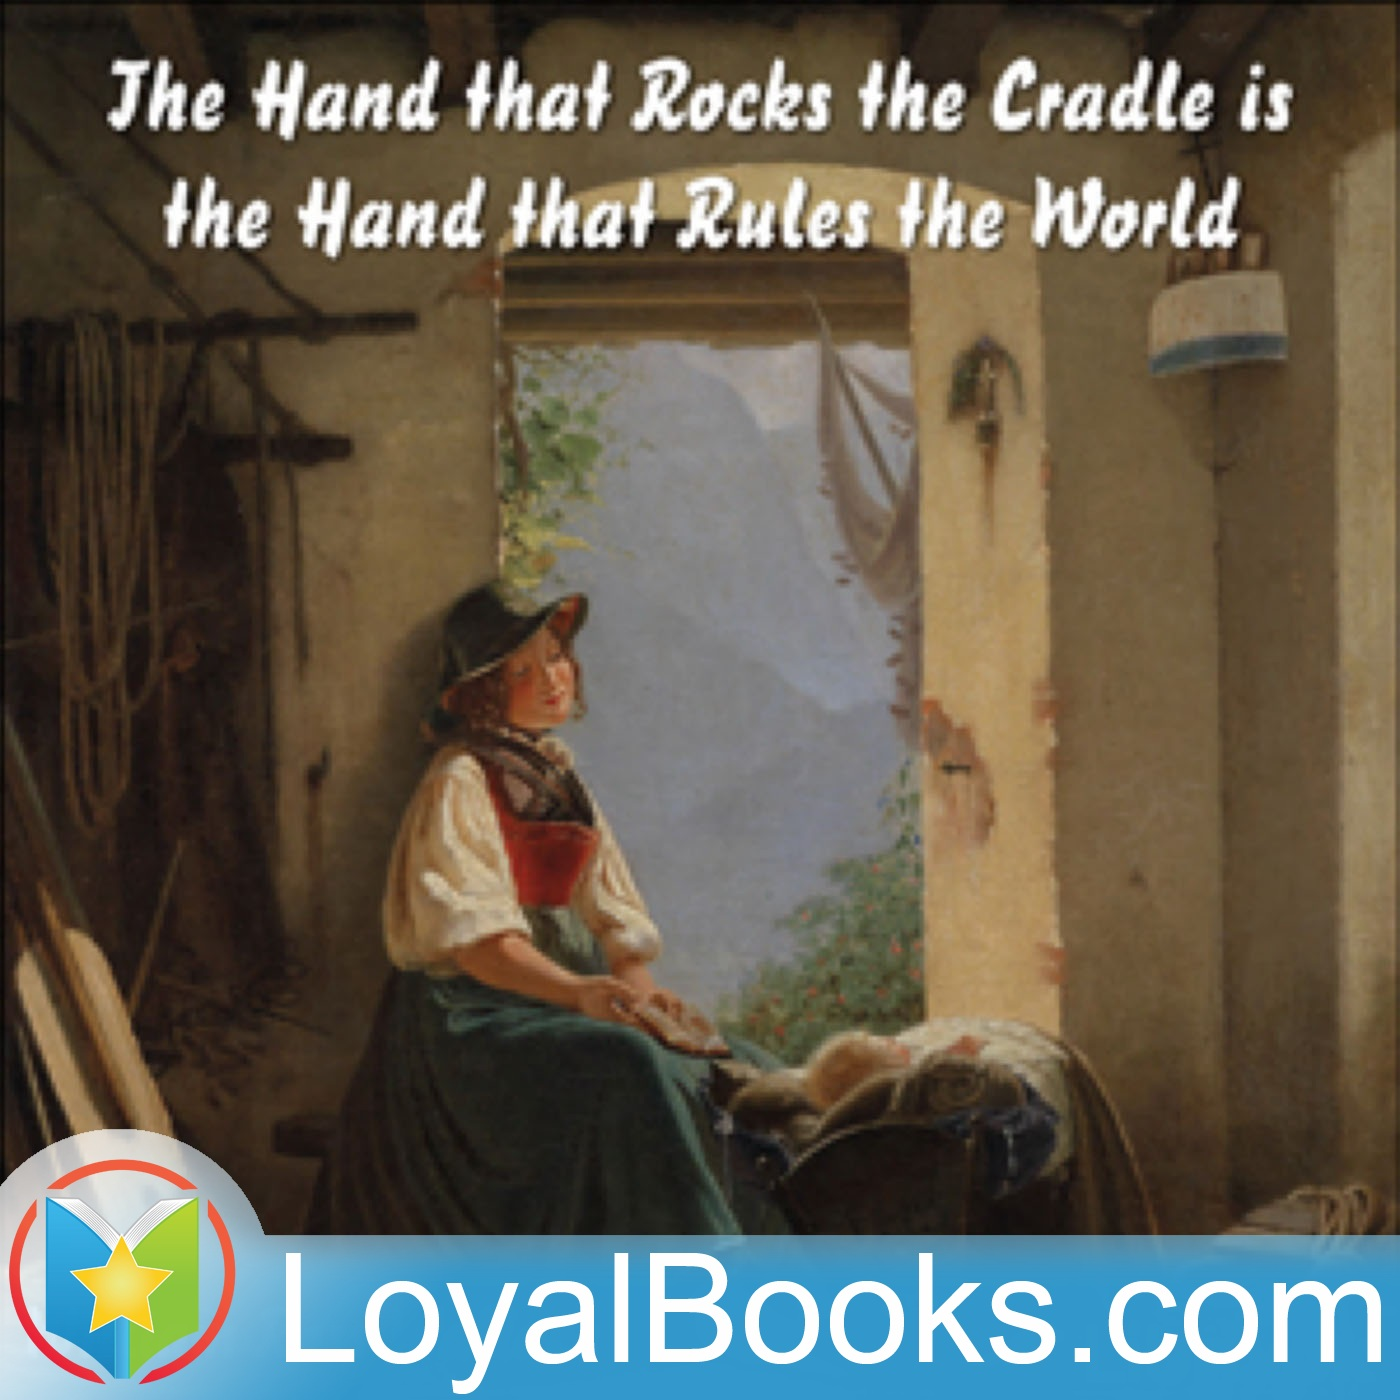 essay on the hand that rocks the cradle rules the world